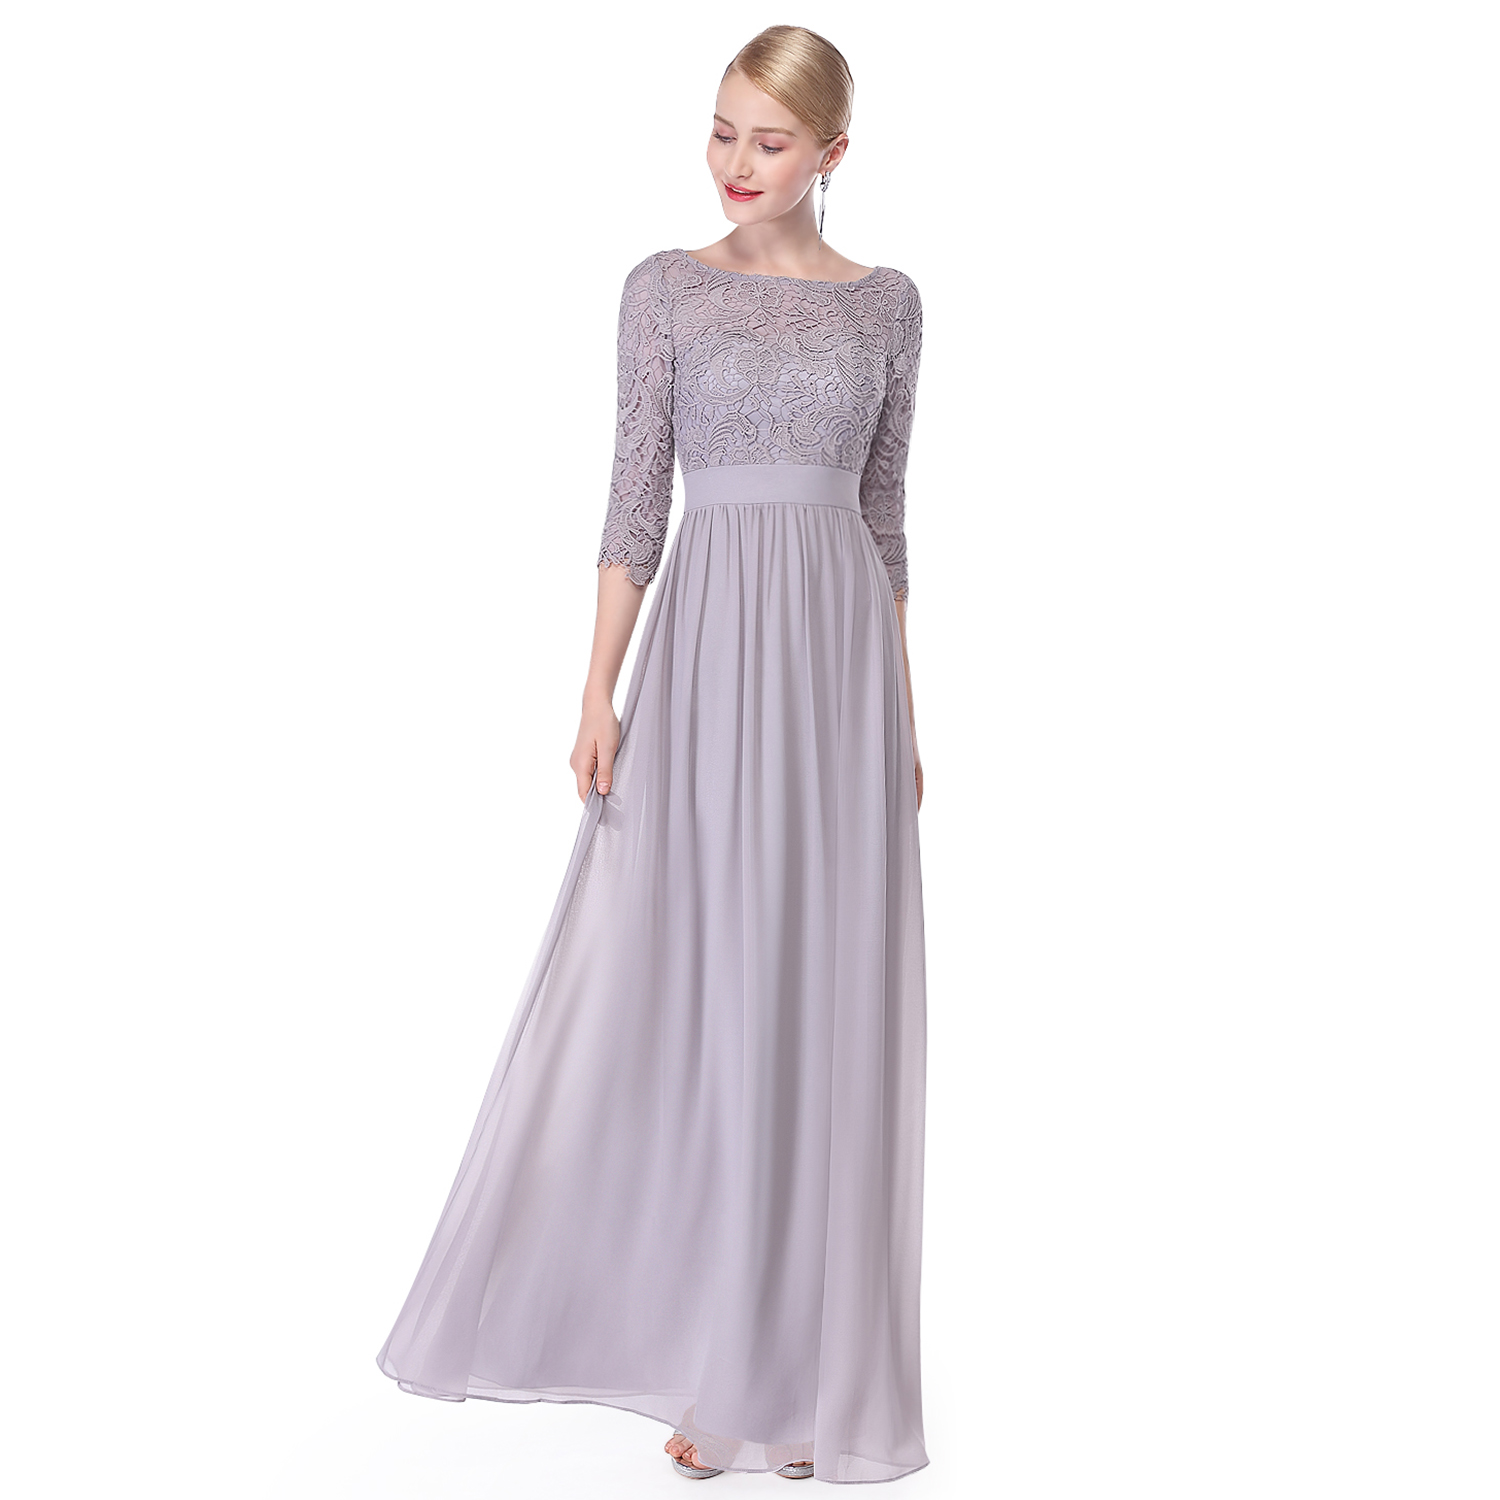 Lace Formal Evening Gowns Half Sleeve Bridesmaid Dresses 08412 Ever ...